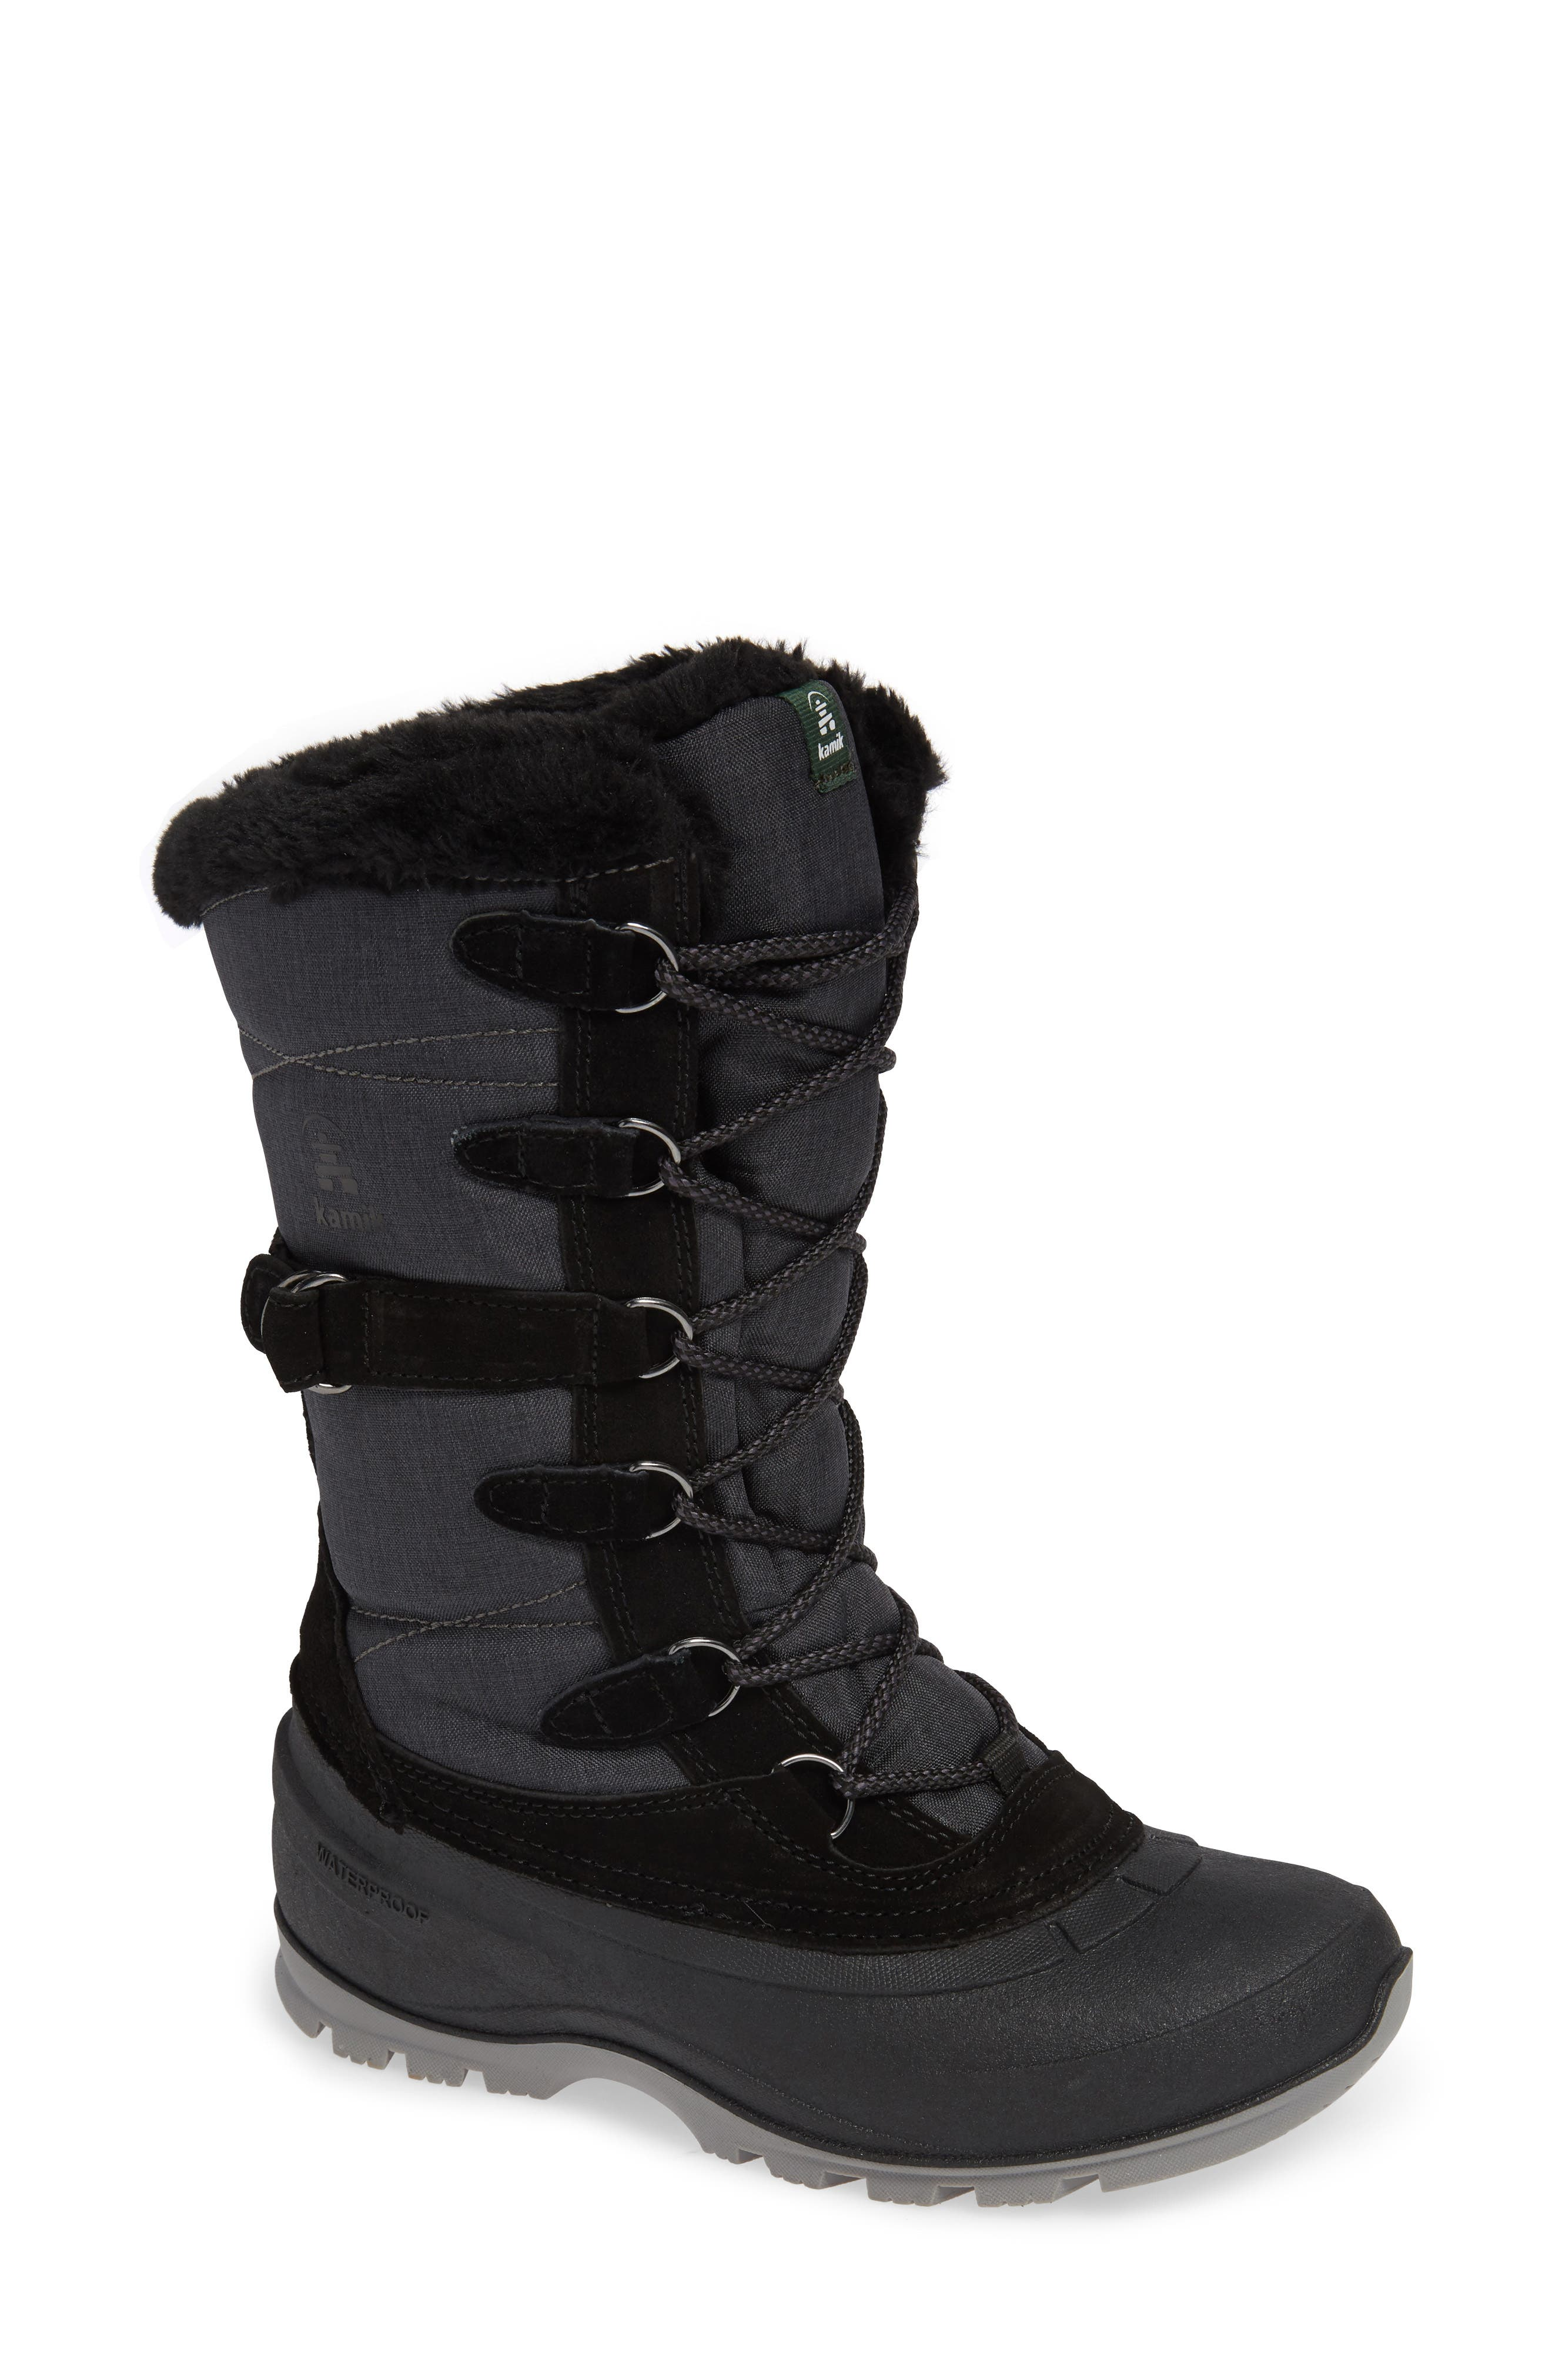 KAMIK Snovalley2 Waterproof Thinsulate<sup>®</sup>-Insulated Snow Boot, Main, color, 001